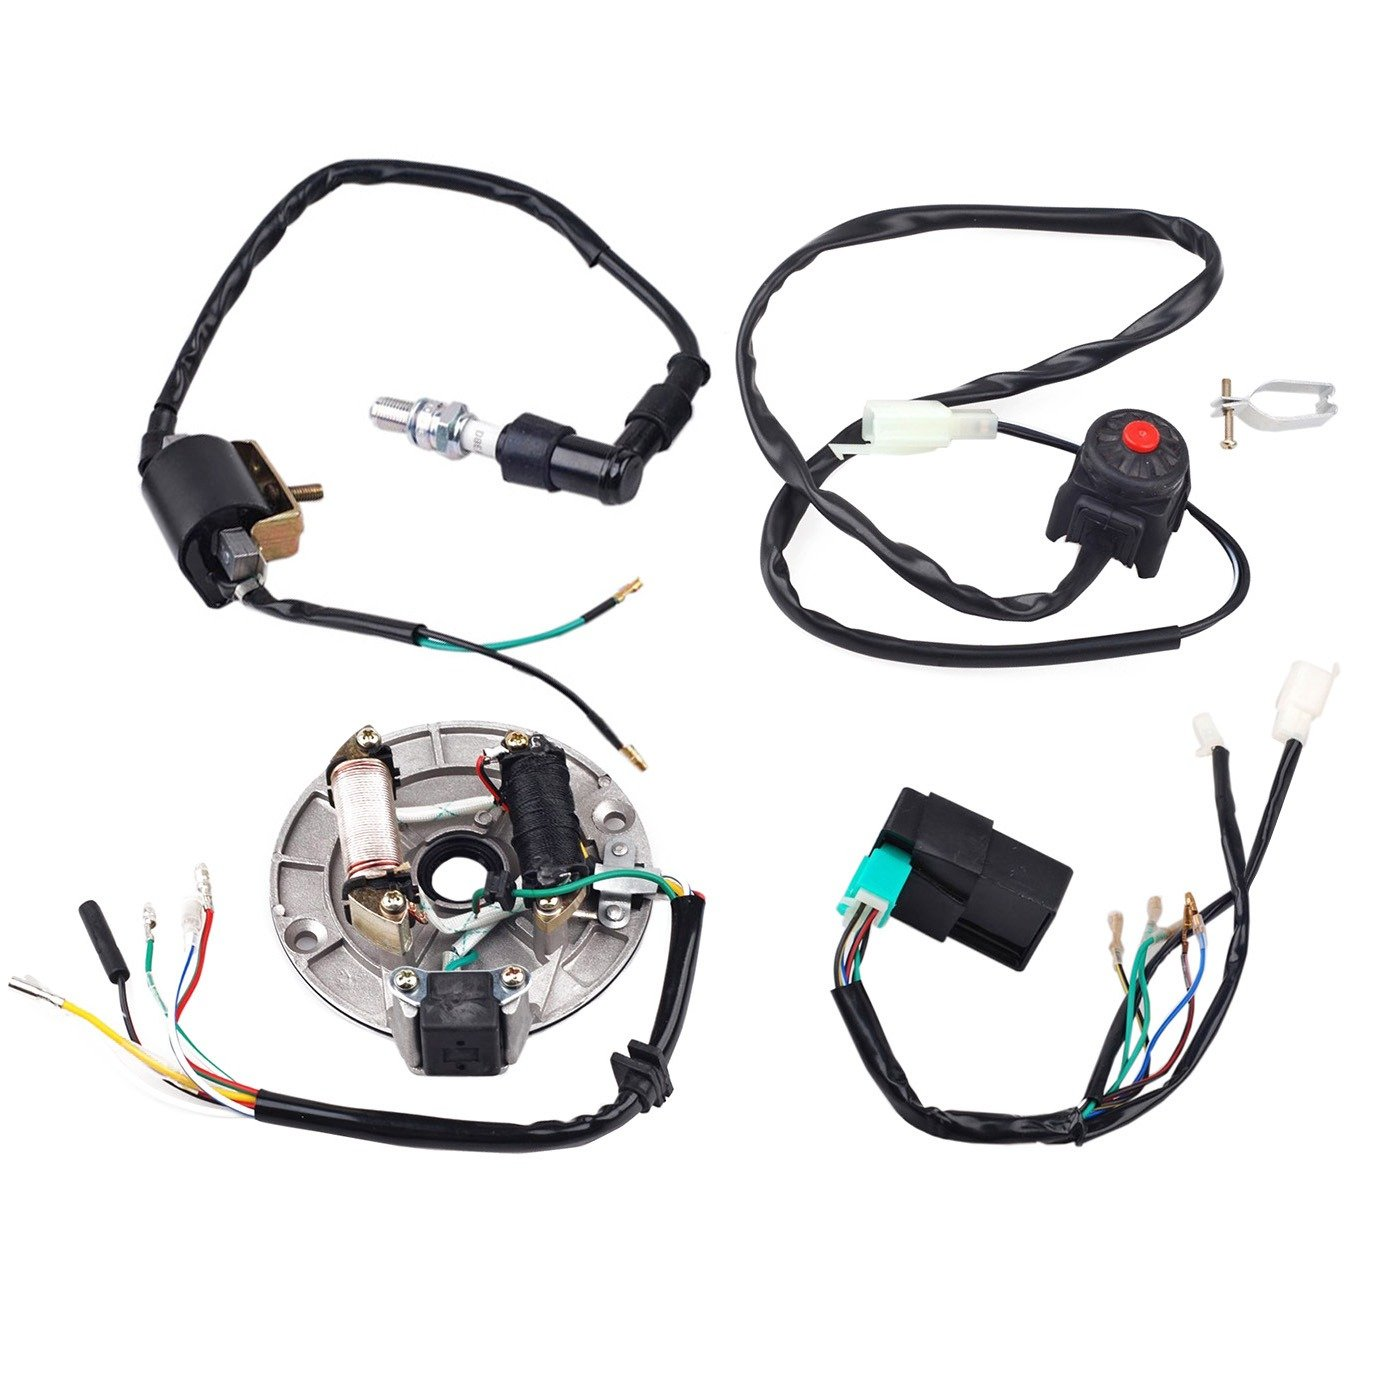 Jcmoto Wire Harness Wiring Loom Cdi Coil Magneto Ssr Pit Bike Ignition Rebuild Kit For Kick Start Dirt 50 125cc Automotive